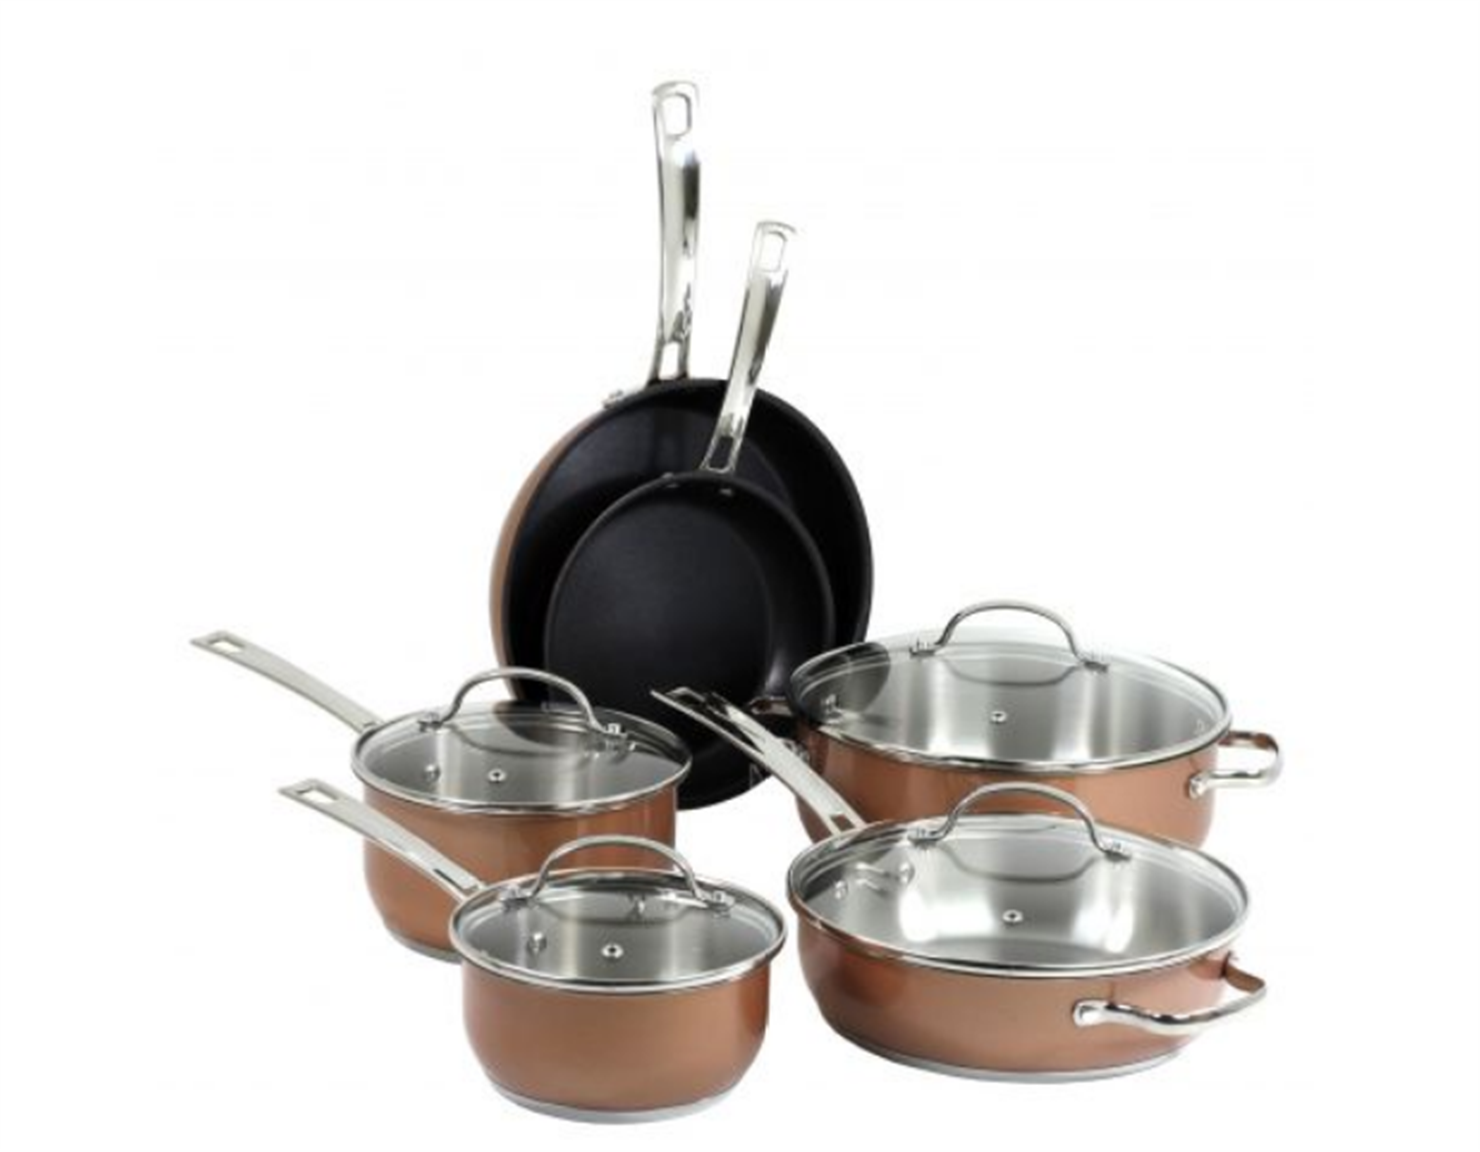 Oneida – Save 30% Off Your Entire Order (Sitewide). Premium 10 Piece Stainless Steel Cookware Set Only $139.99, Reg $311.00!